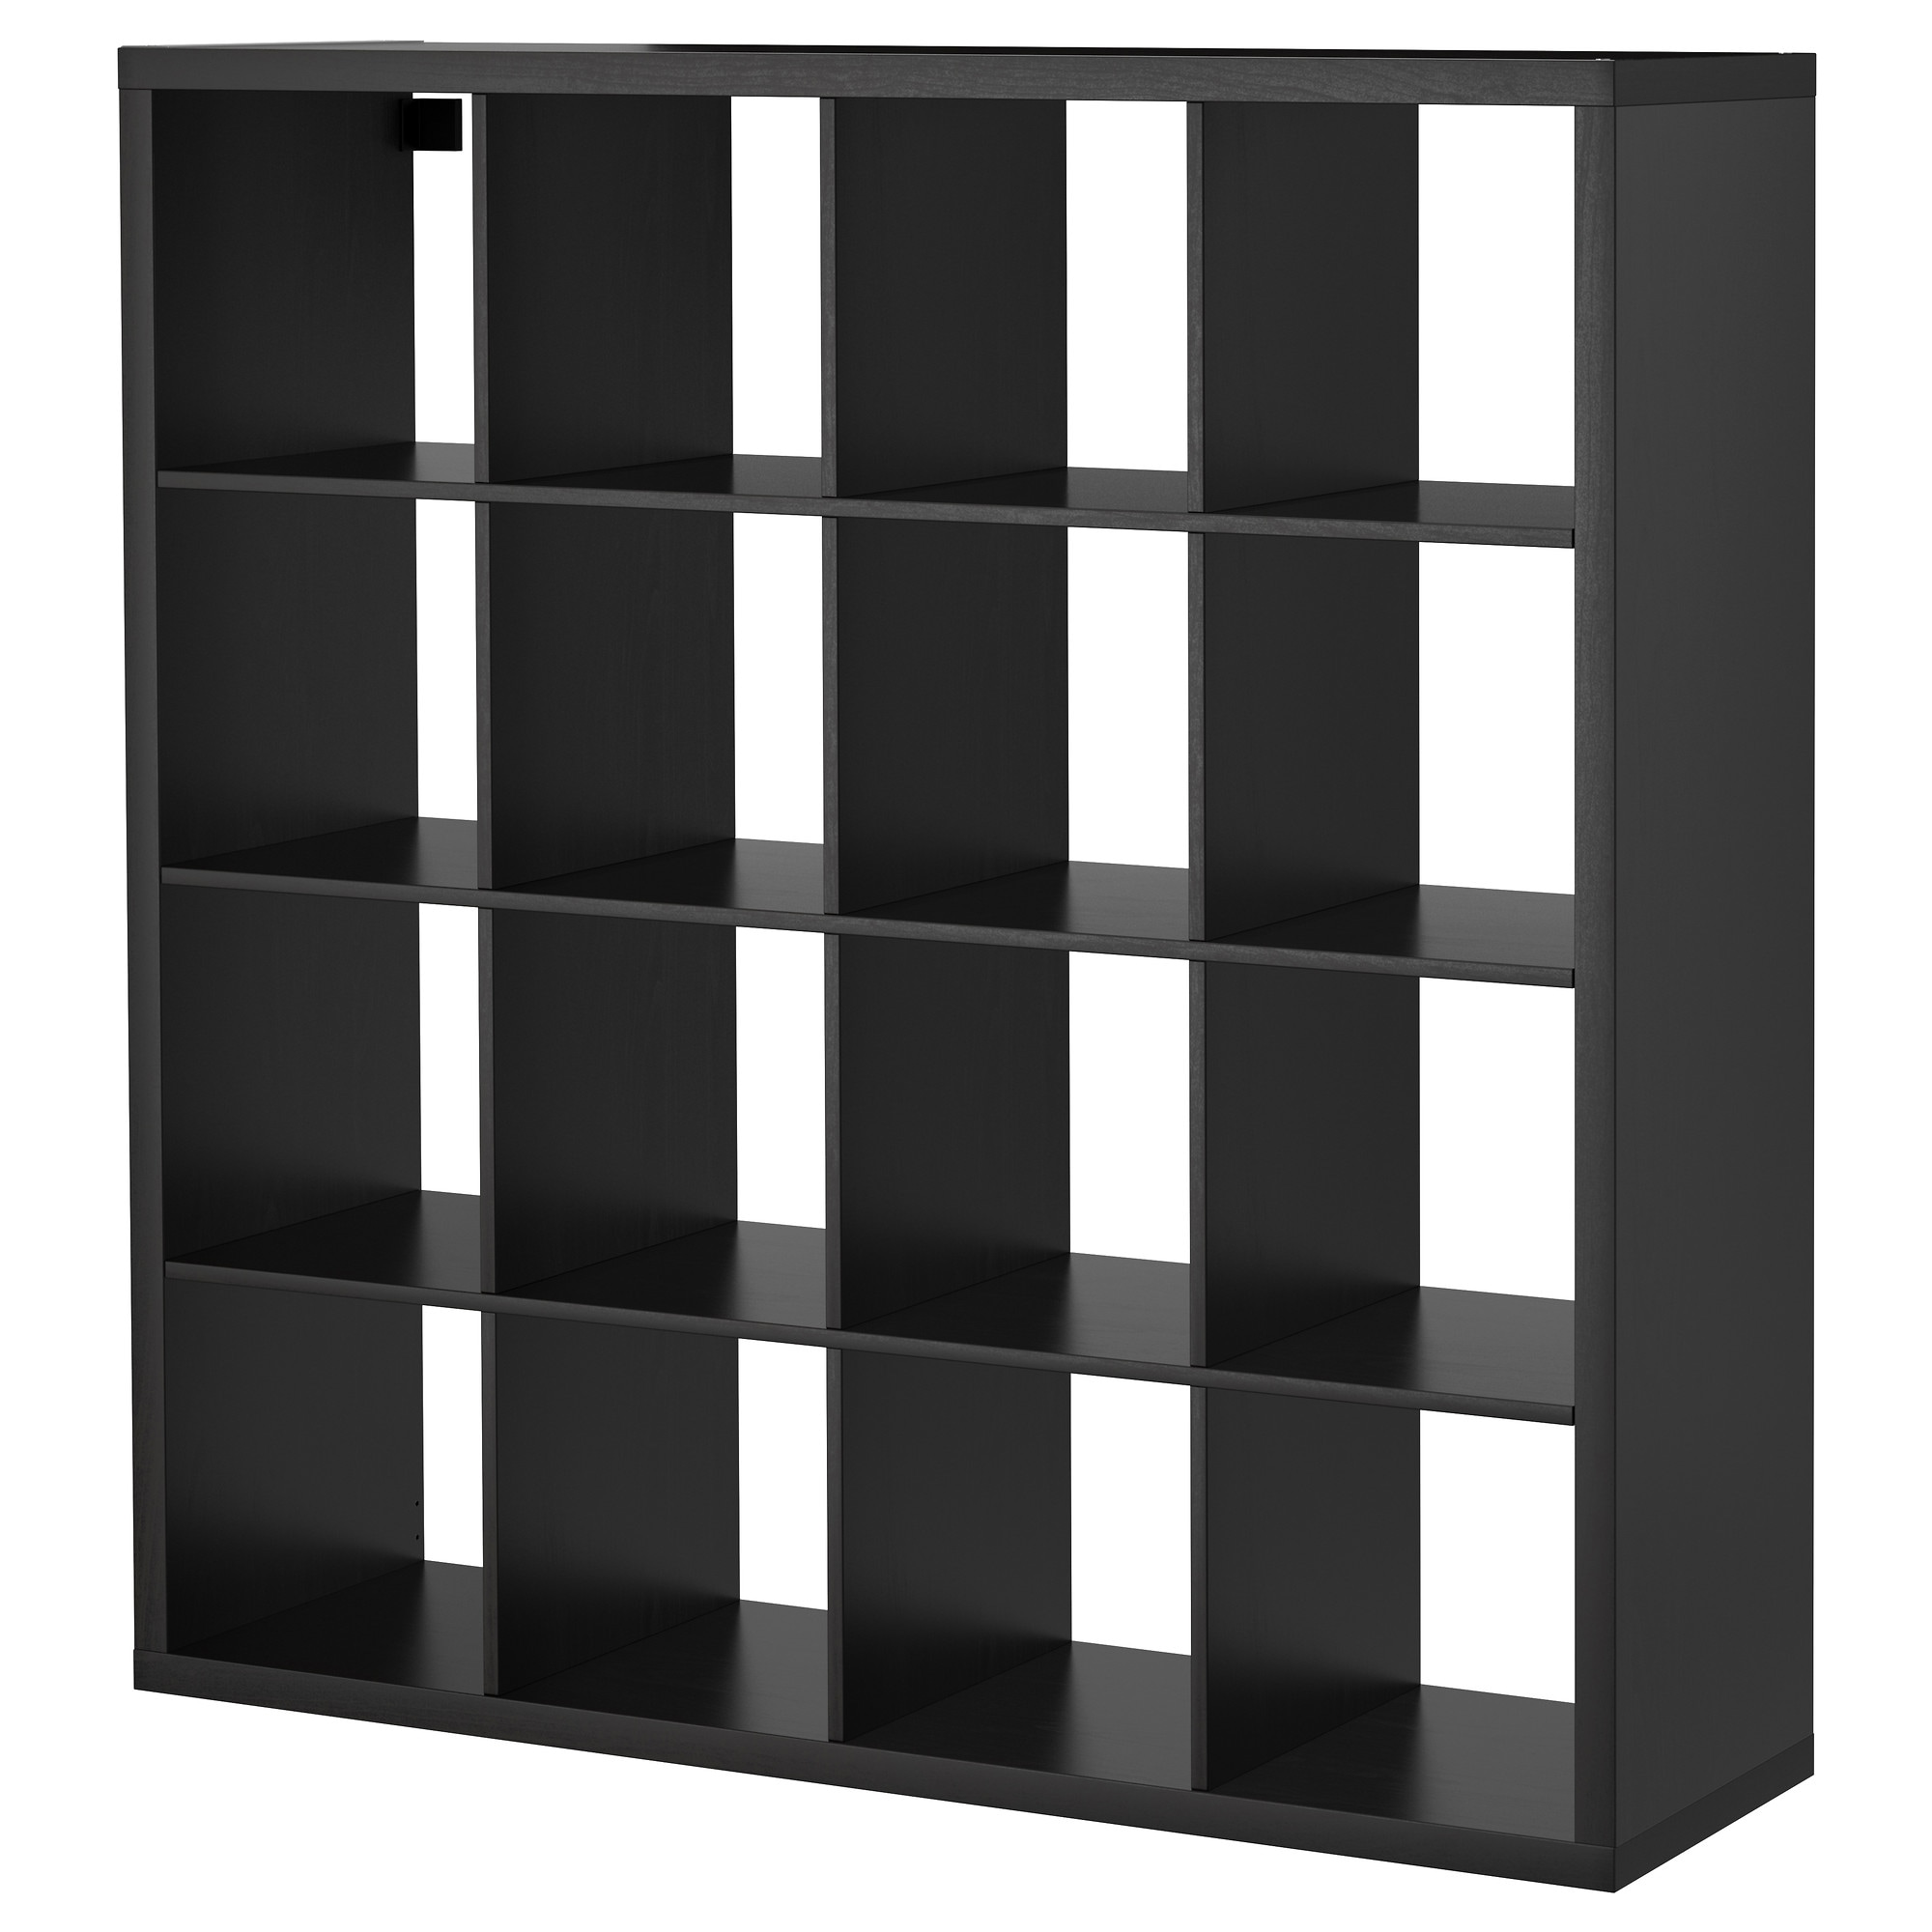 Ikea regal kallax 1x4  KALLAX Shelf unit - black-brown - IKEA